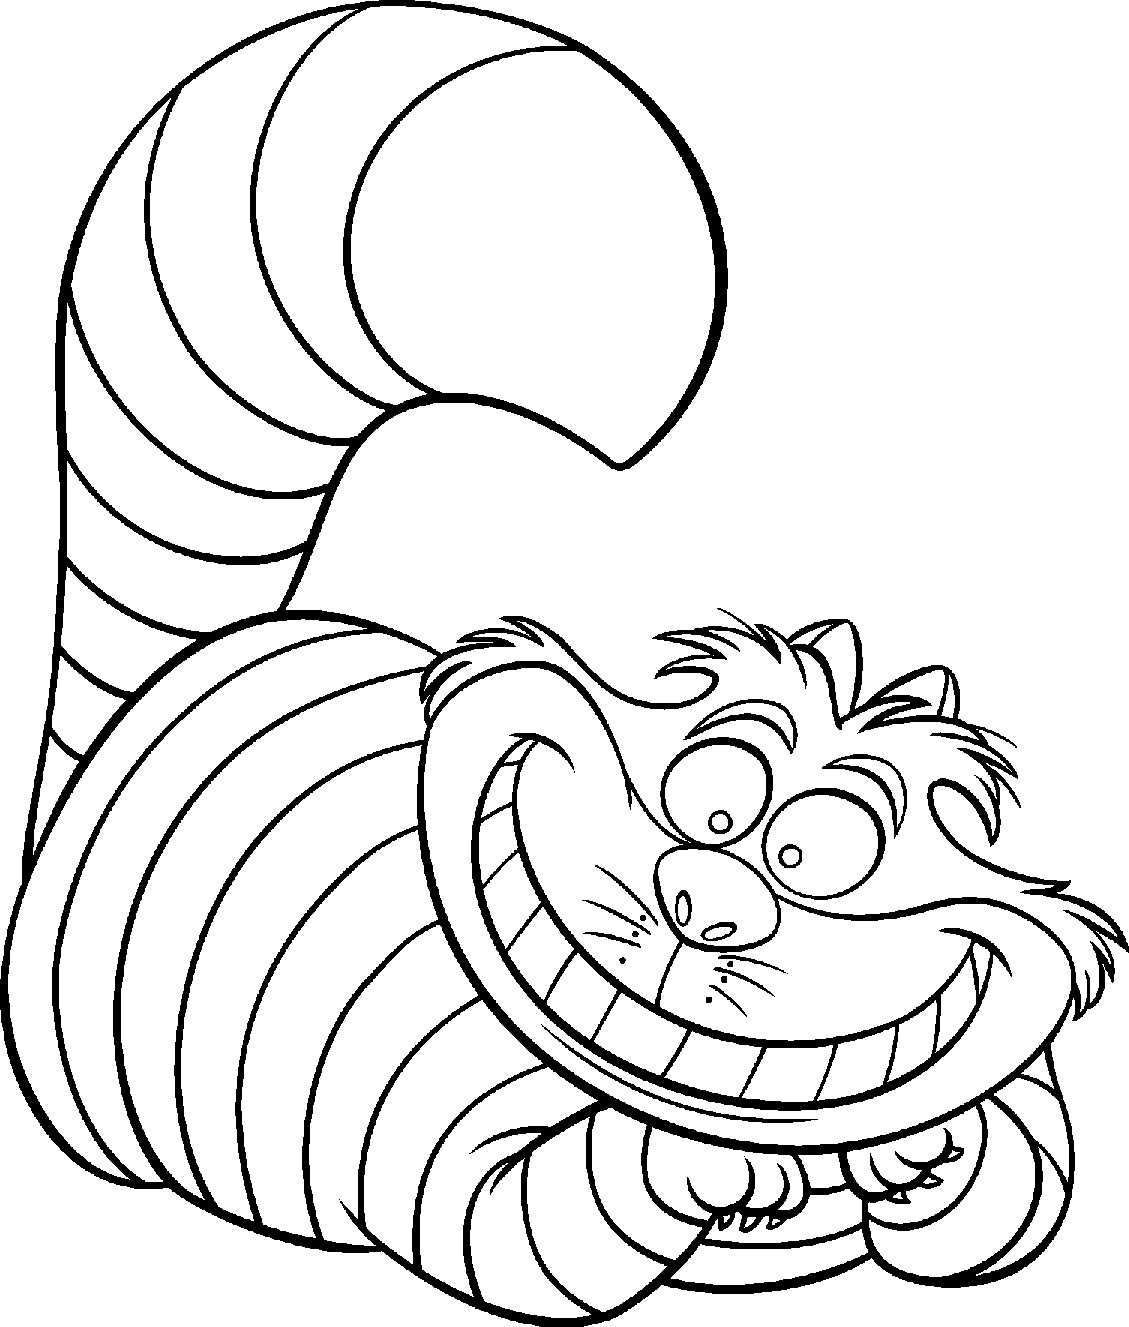 coloring disney 33 free disney coloring pages for kids baps disney coloring